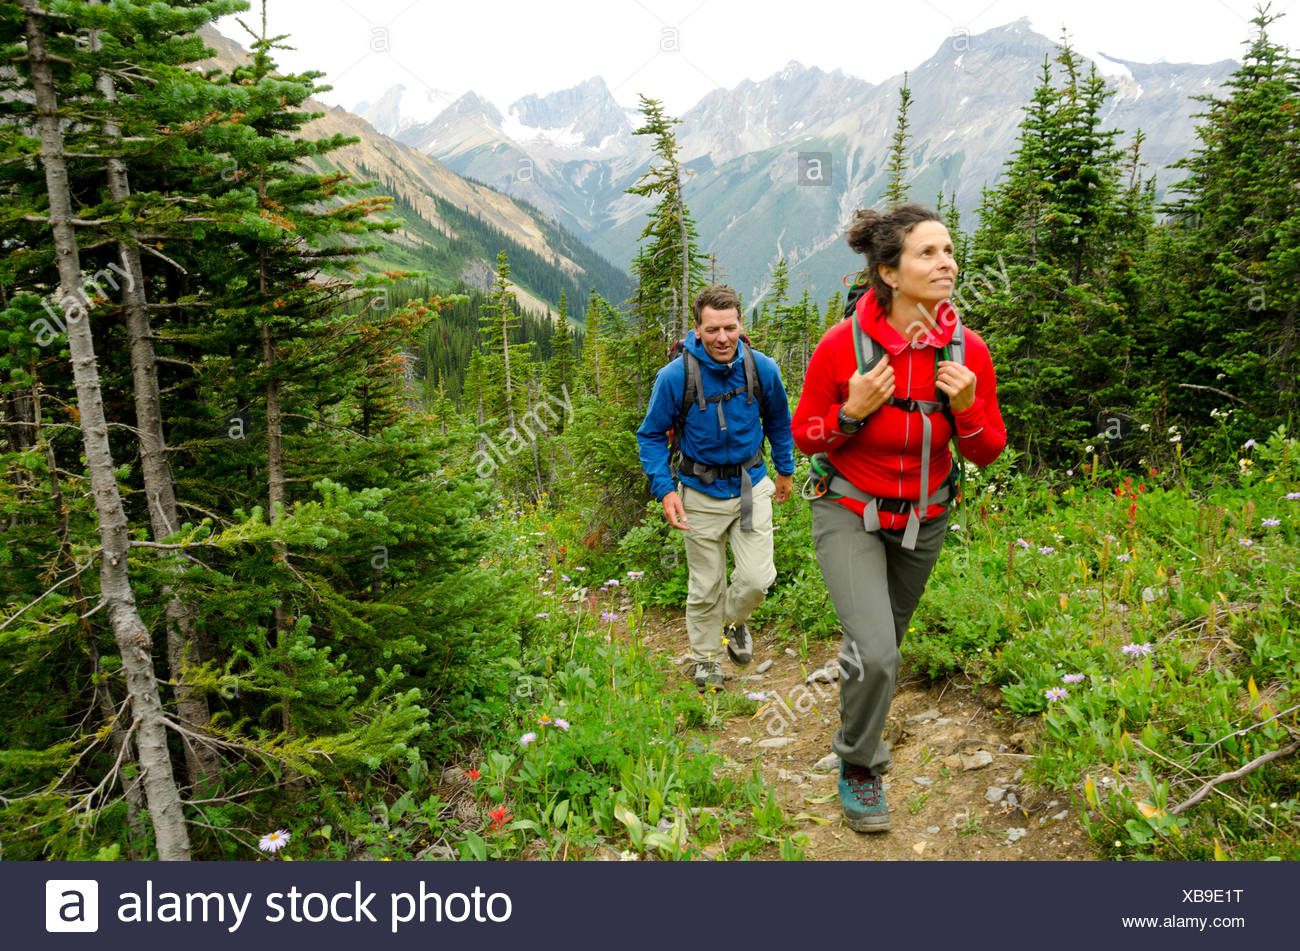 Hiking at Icefall Lodge north of Golden, British Columbia - Stock Image